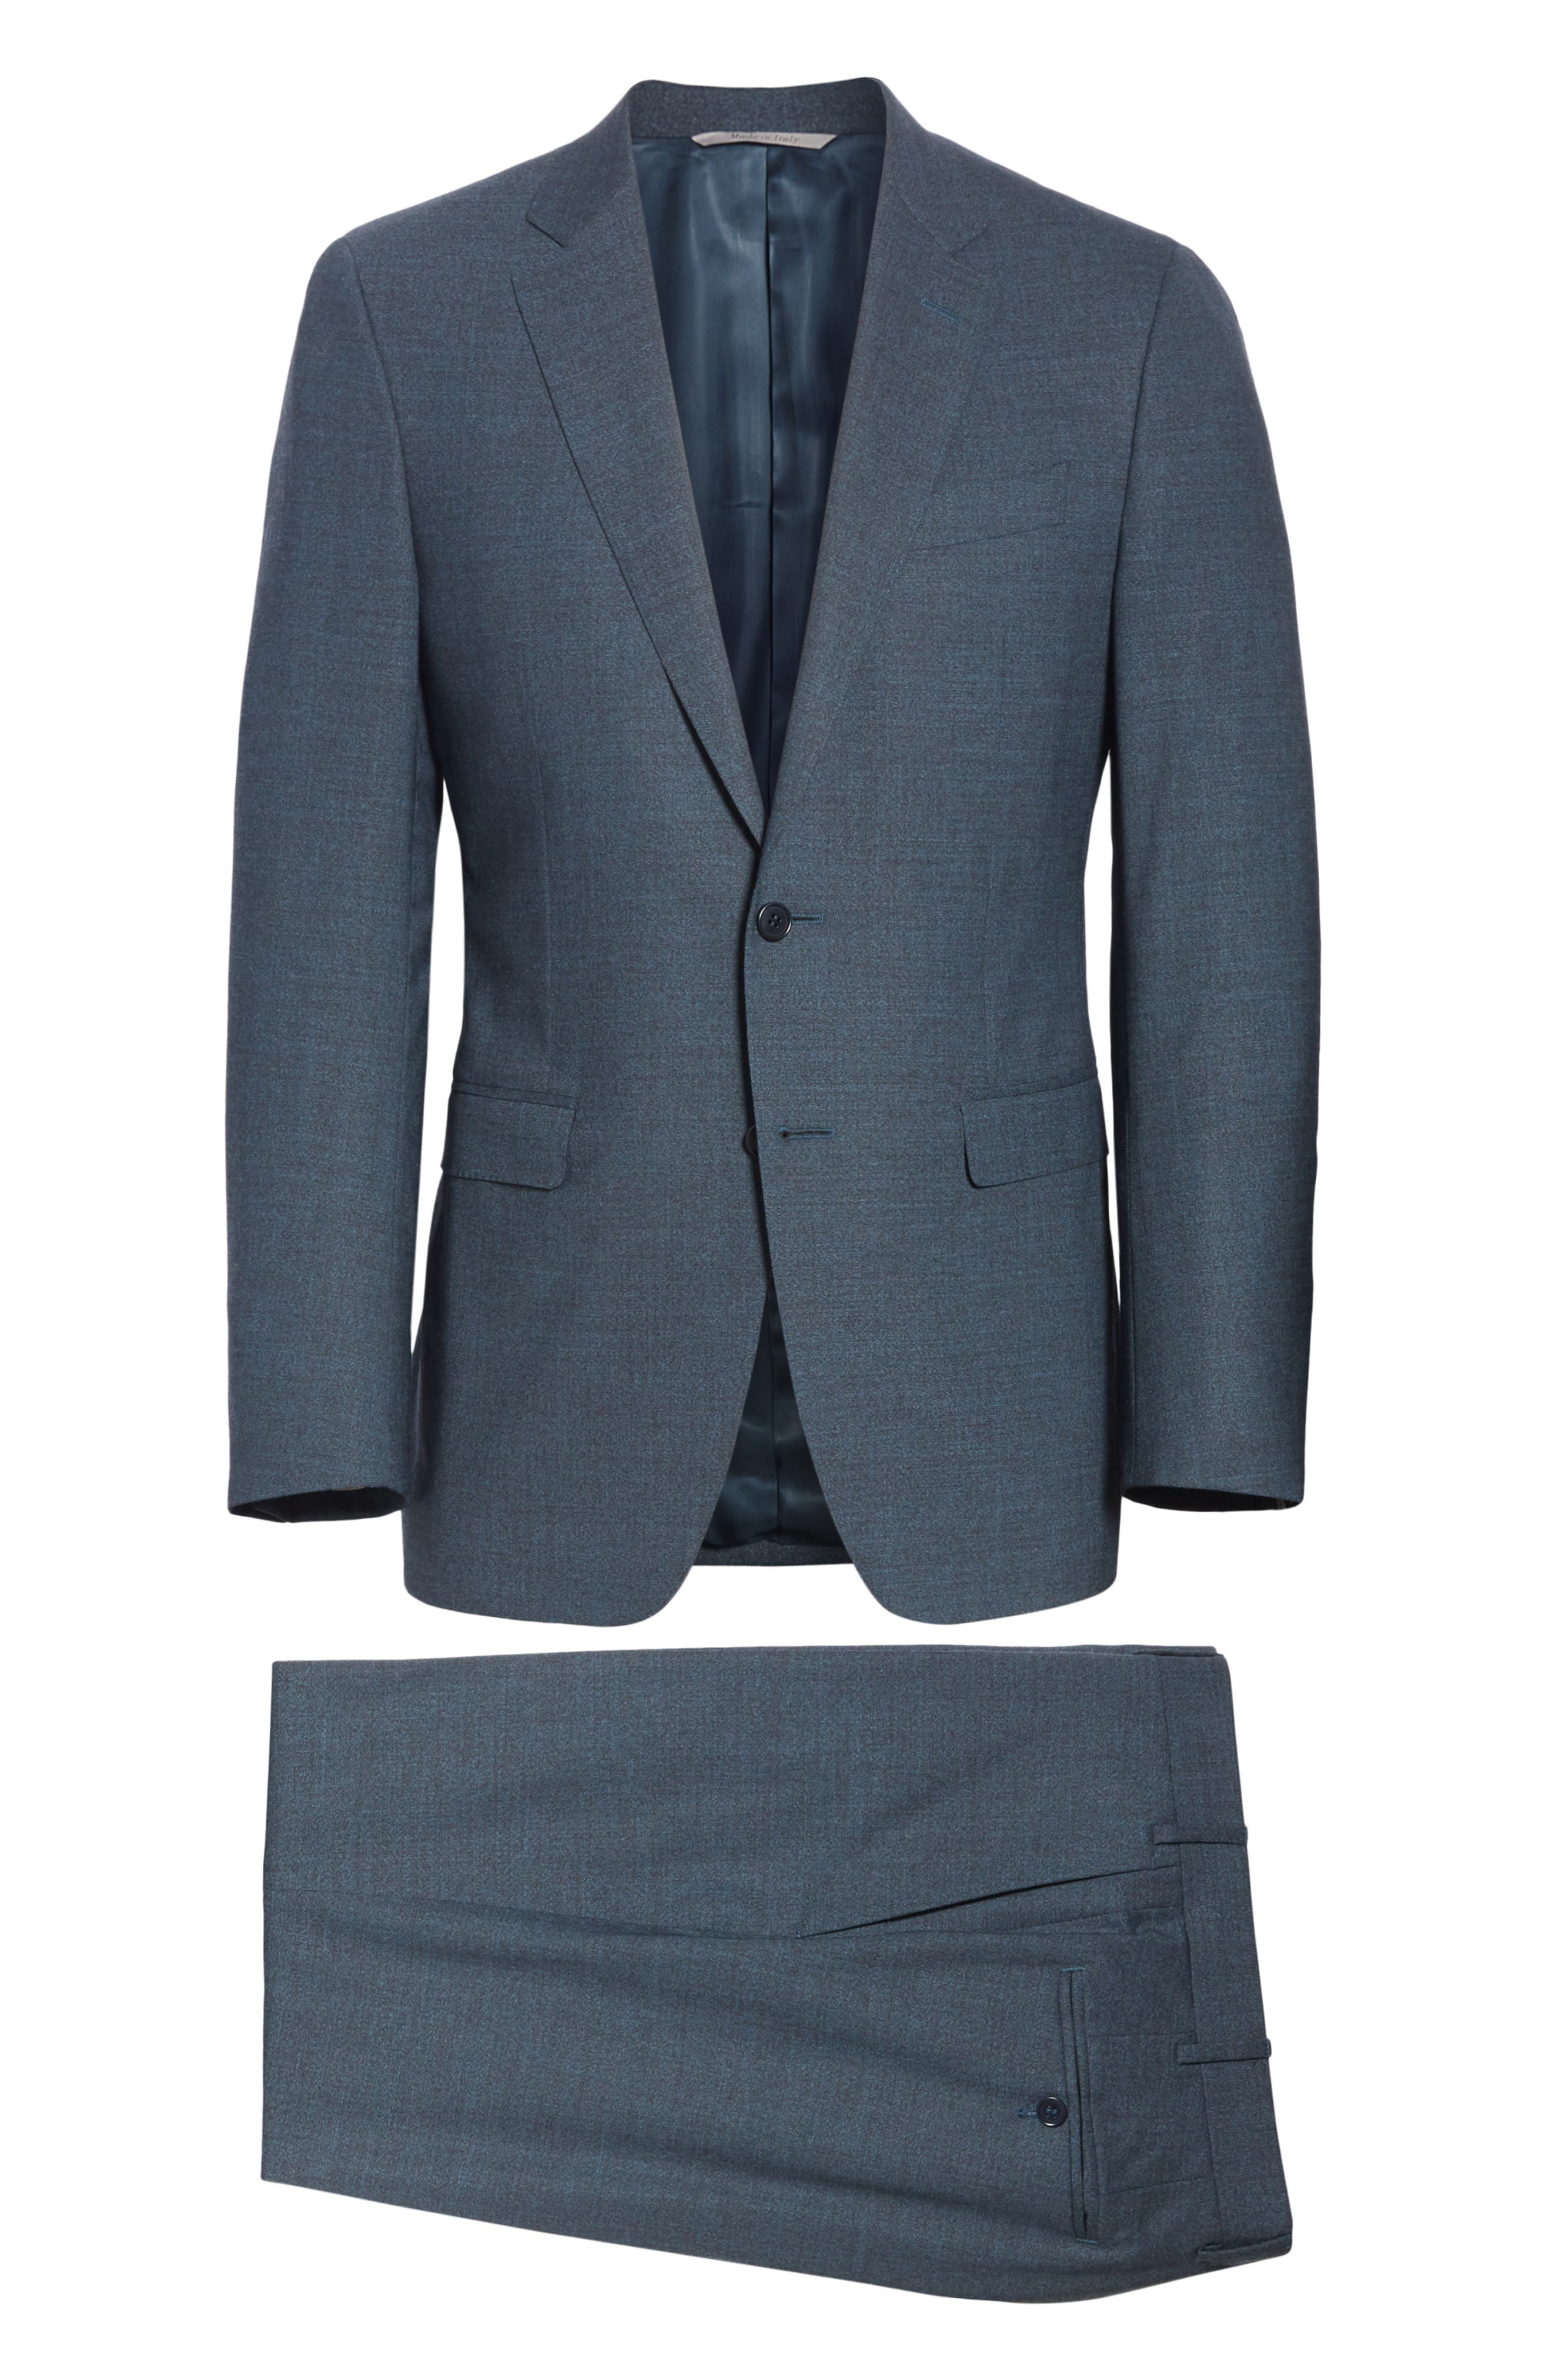 CANALI,                             Classic Fit Stretch Solid Wool Suit,                             Alternate thumbnail 7, color,                             400